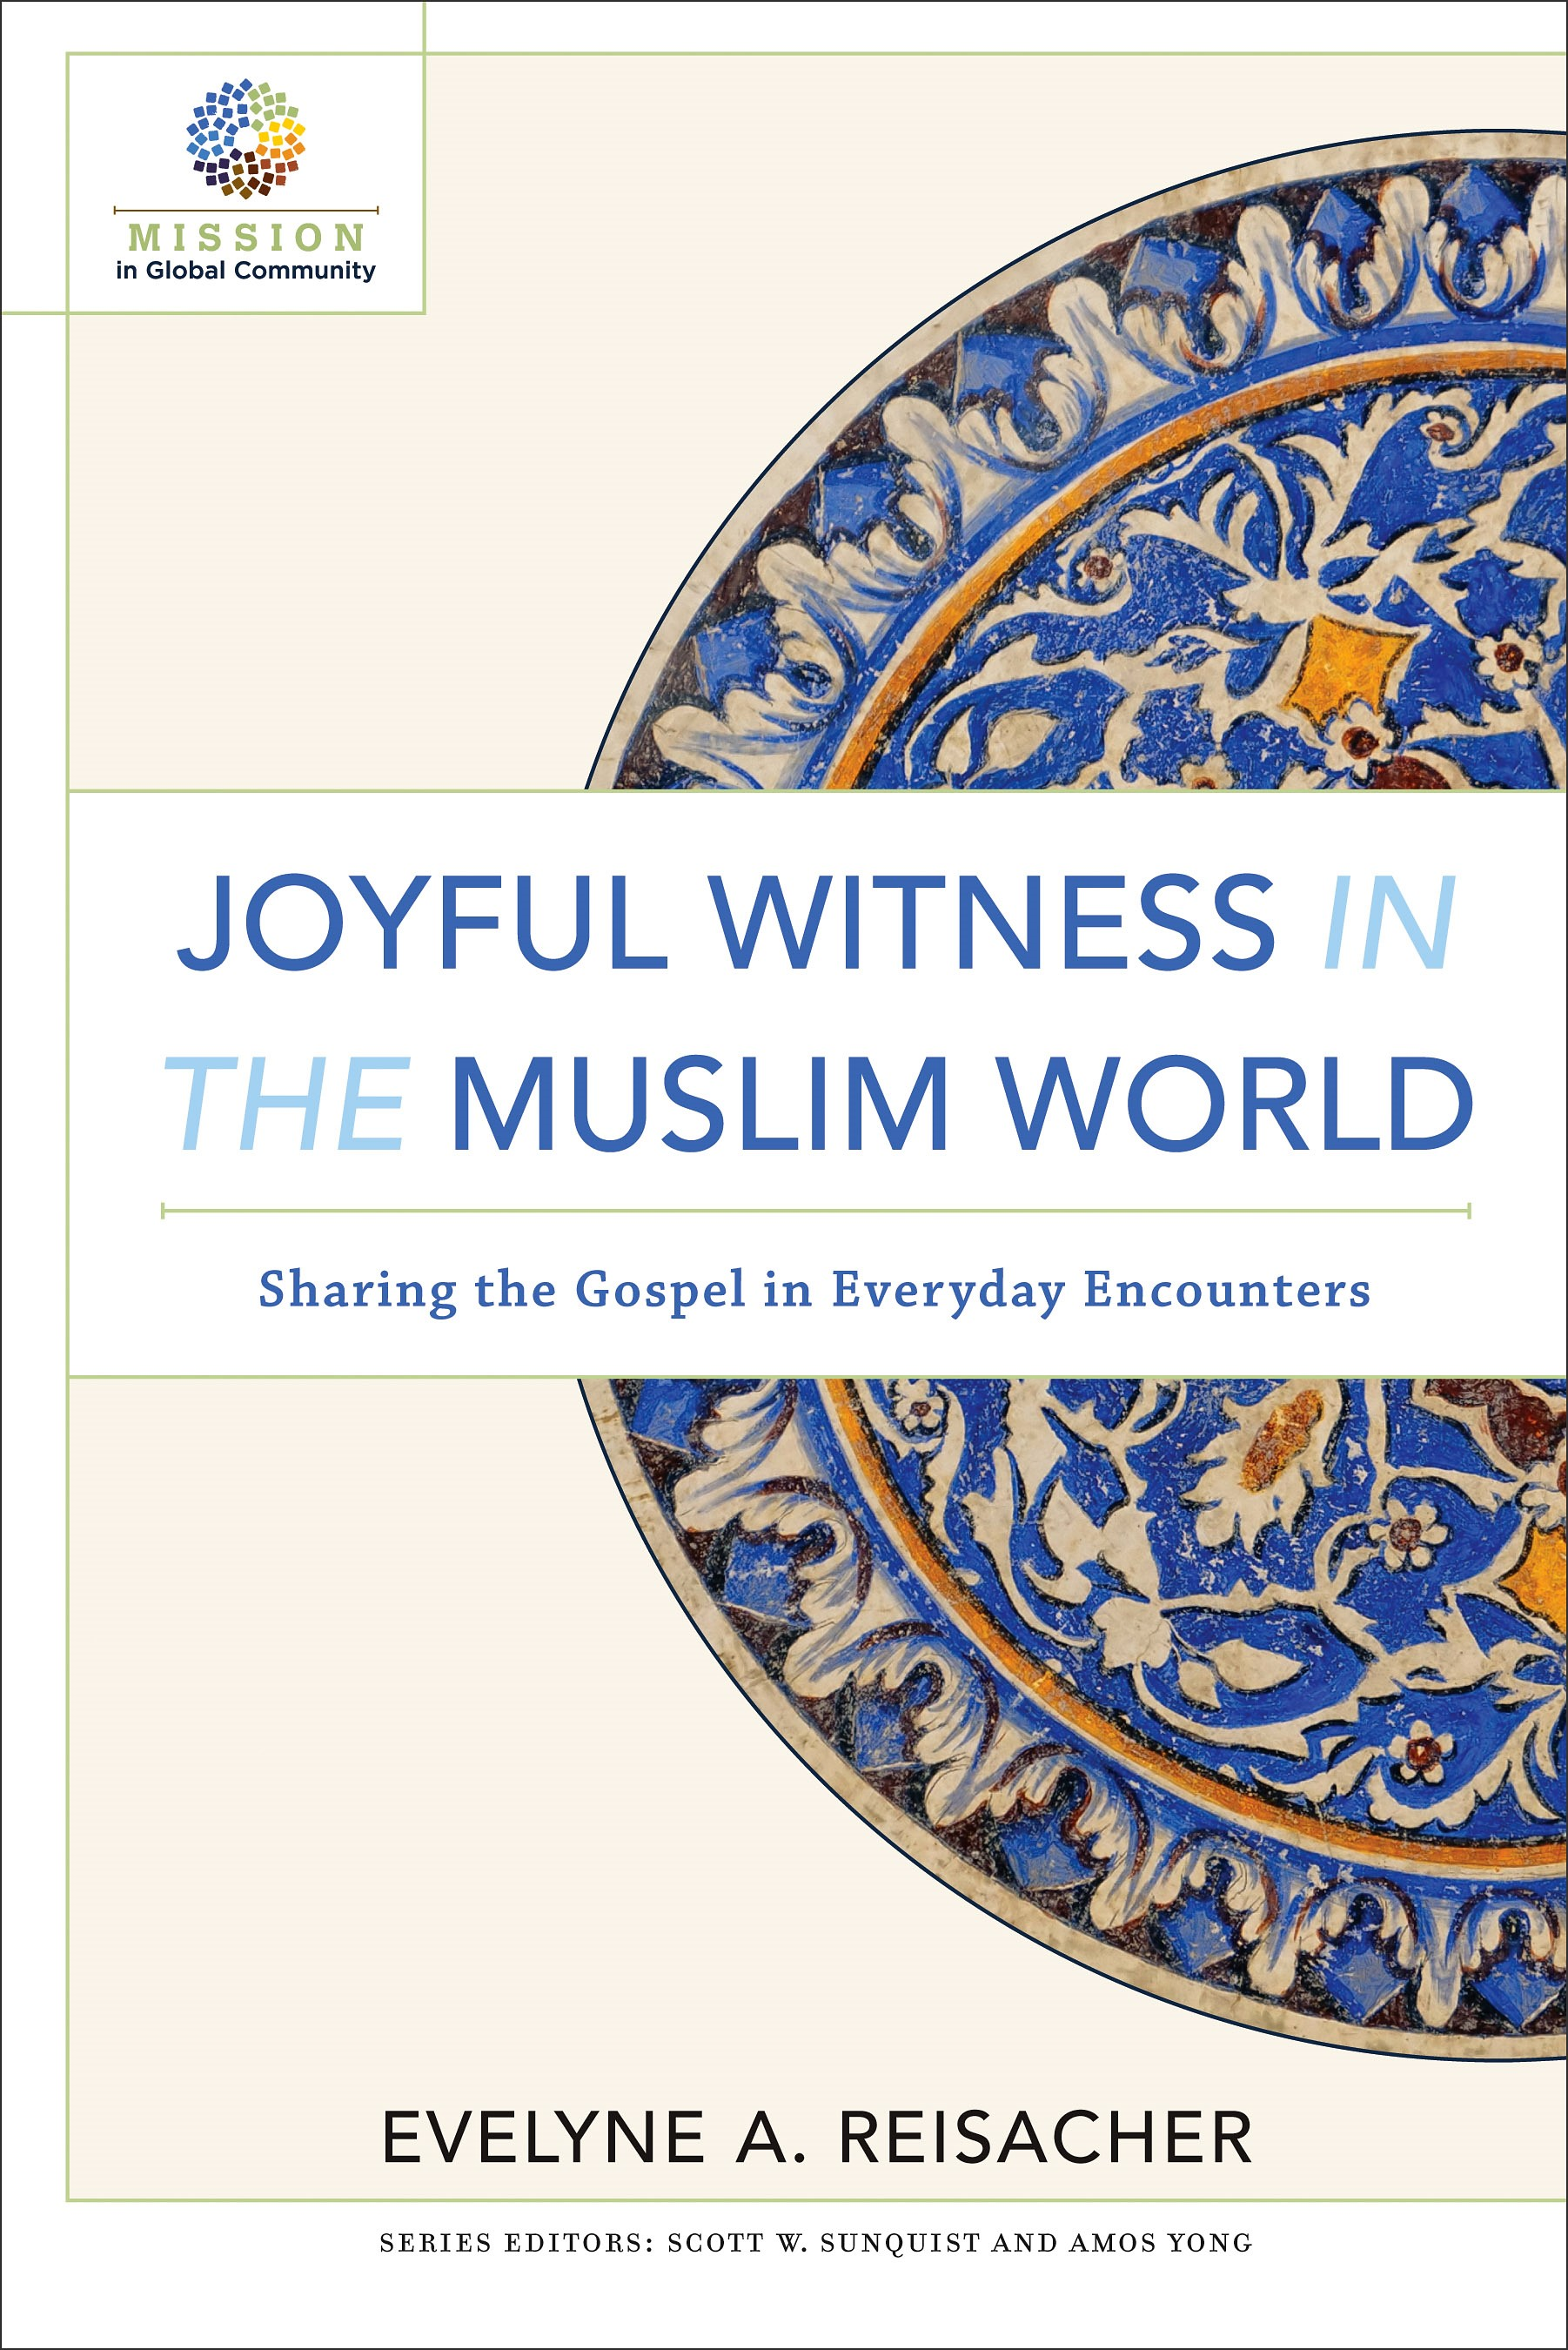 Joyful Witness in the Muslim World: Sharing the Gospel in Everyday Encounters